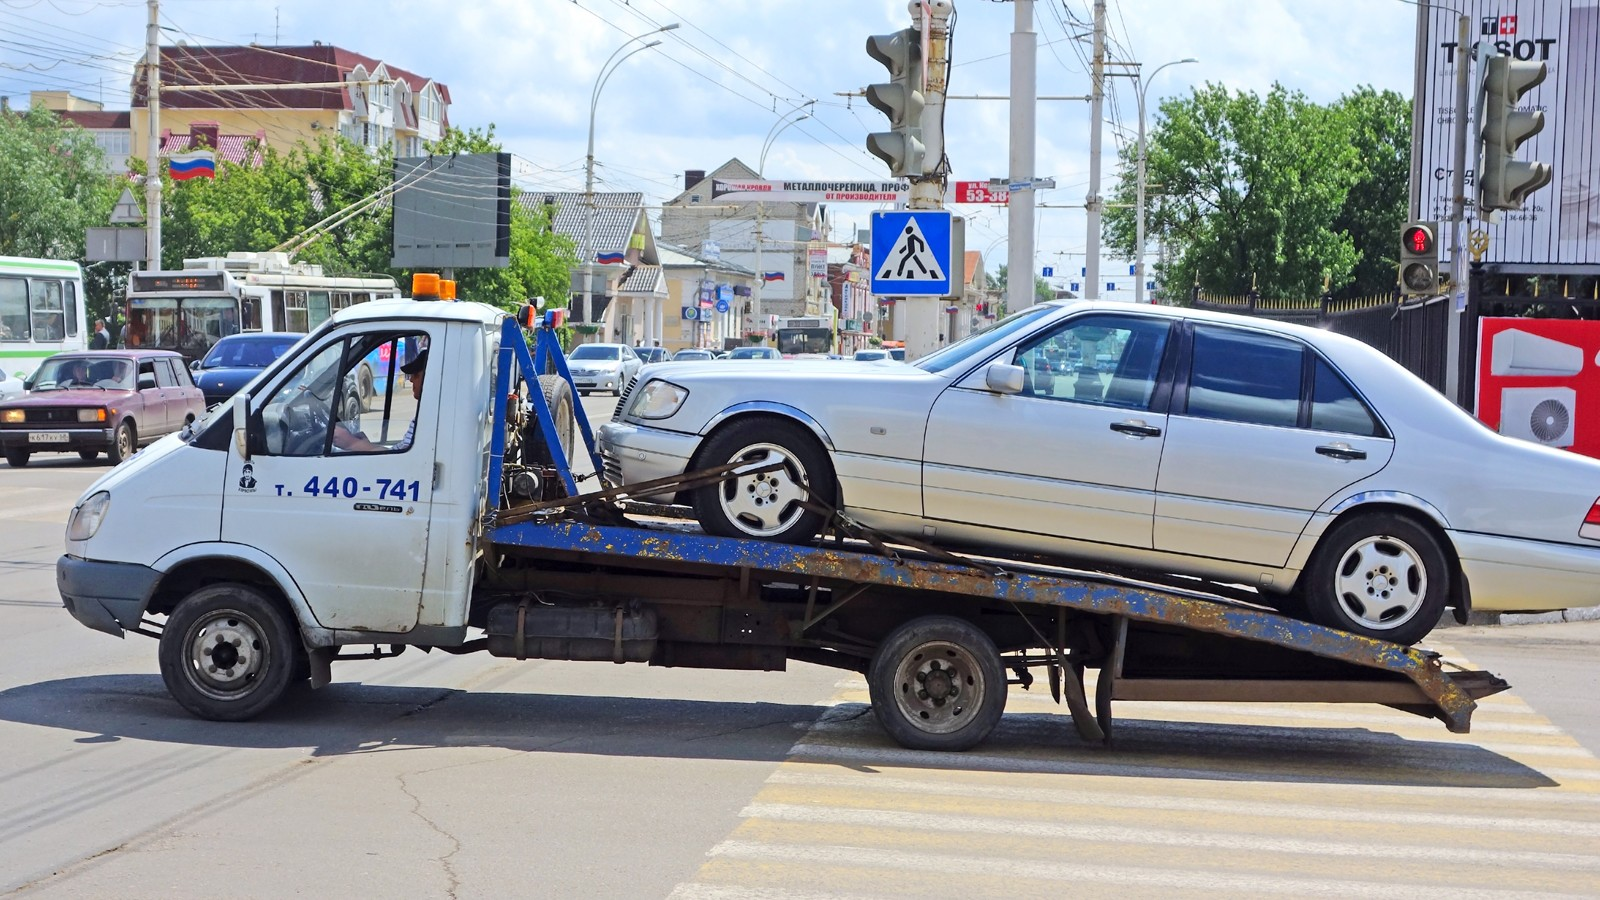 Tow truck with a car